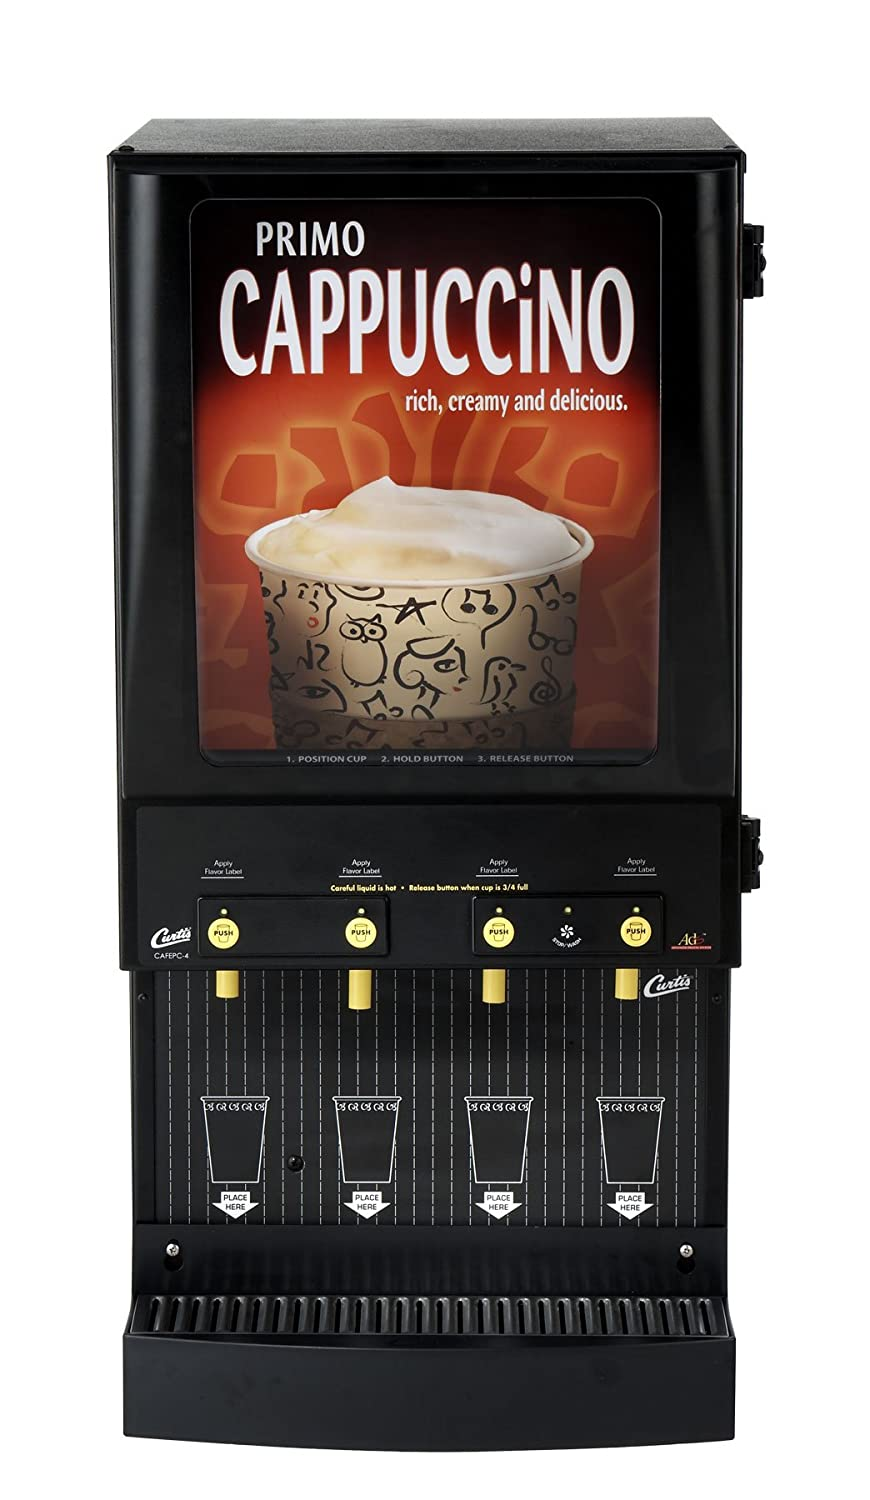 Wilbur Curtis Café Primo Cappuccino with Lightbox 4 Station Cappuccino (4 Lb Hoppers) - Commercial Cappuccino Machine - CAFEPC4CL10000 (Each) Wilbur Curtis Co. Inc.